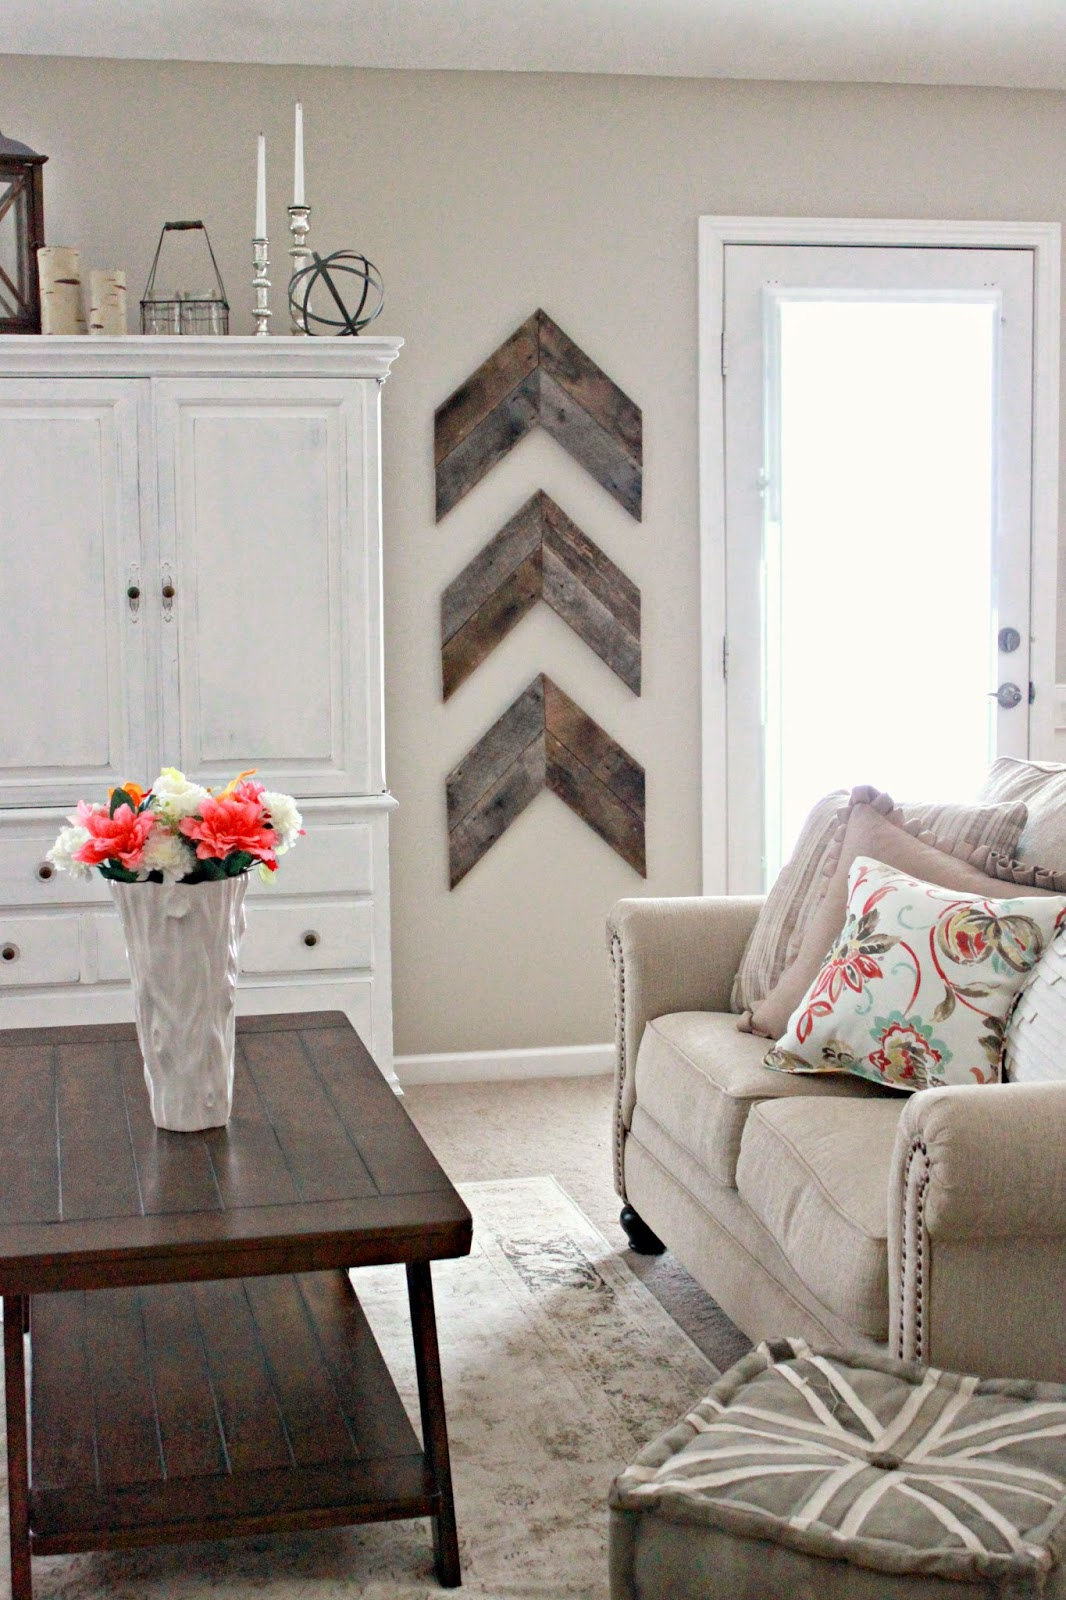 15 striking ways to decorate with arrows for Wood walls decorating ideas